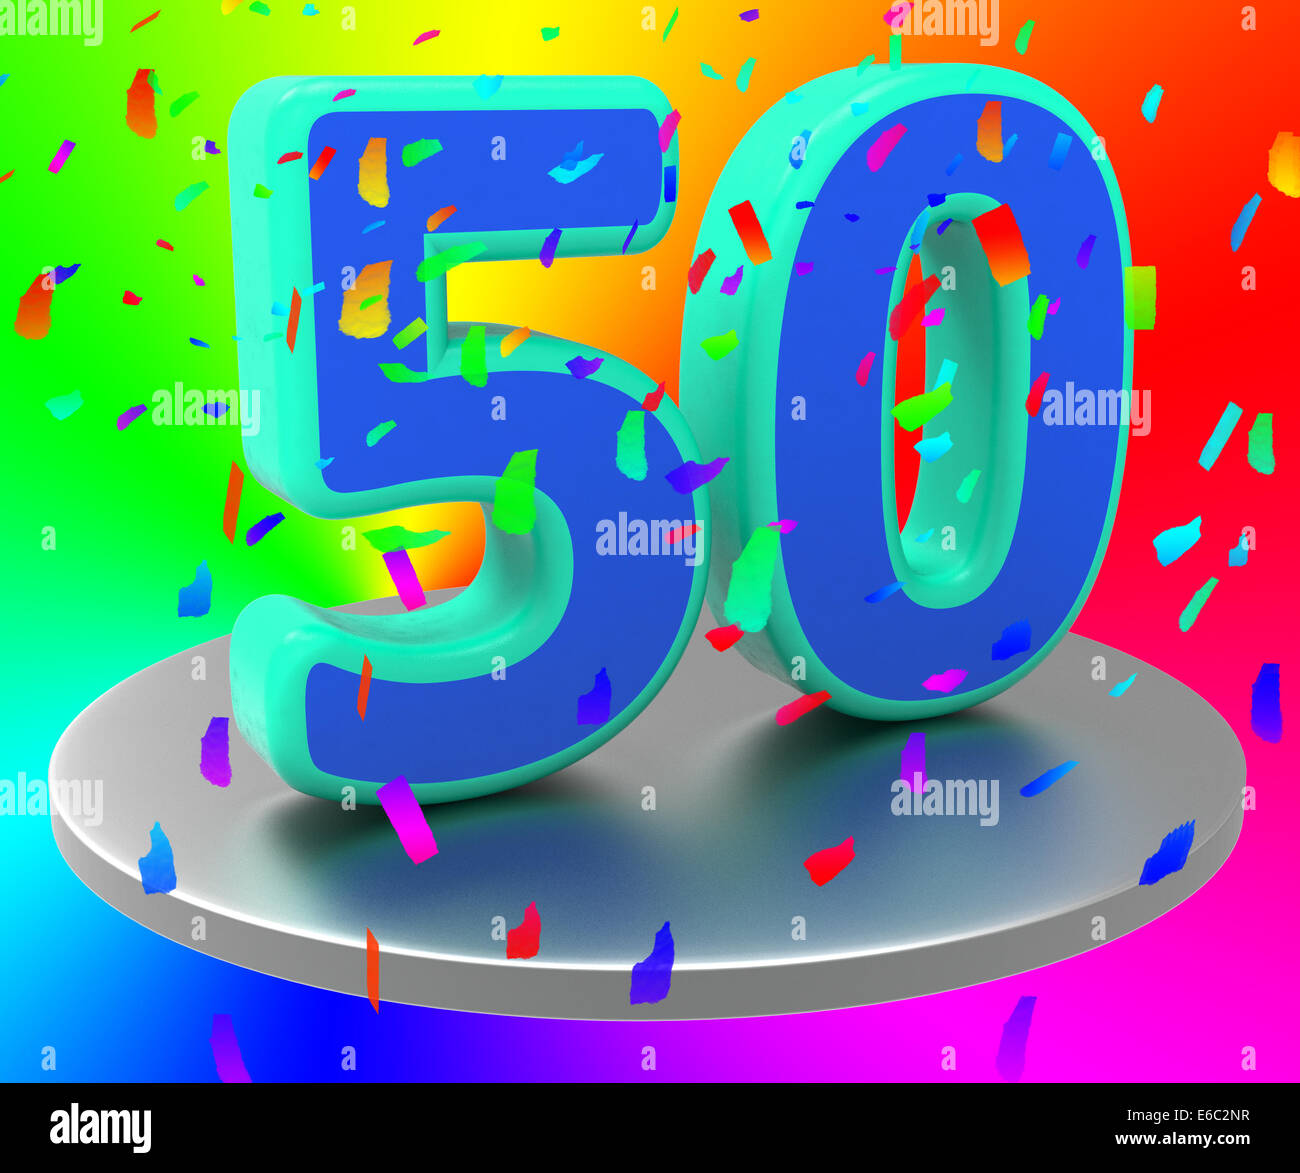 Birthday fiftieth meaning happy anniversary and happiness stock birthday fiftieth meaning happy anniversary and happiness buycottarizona